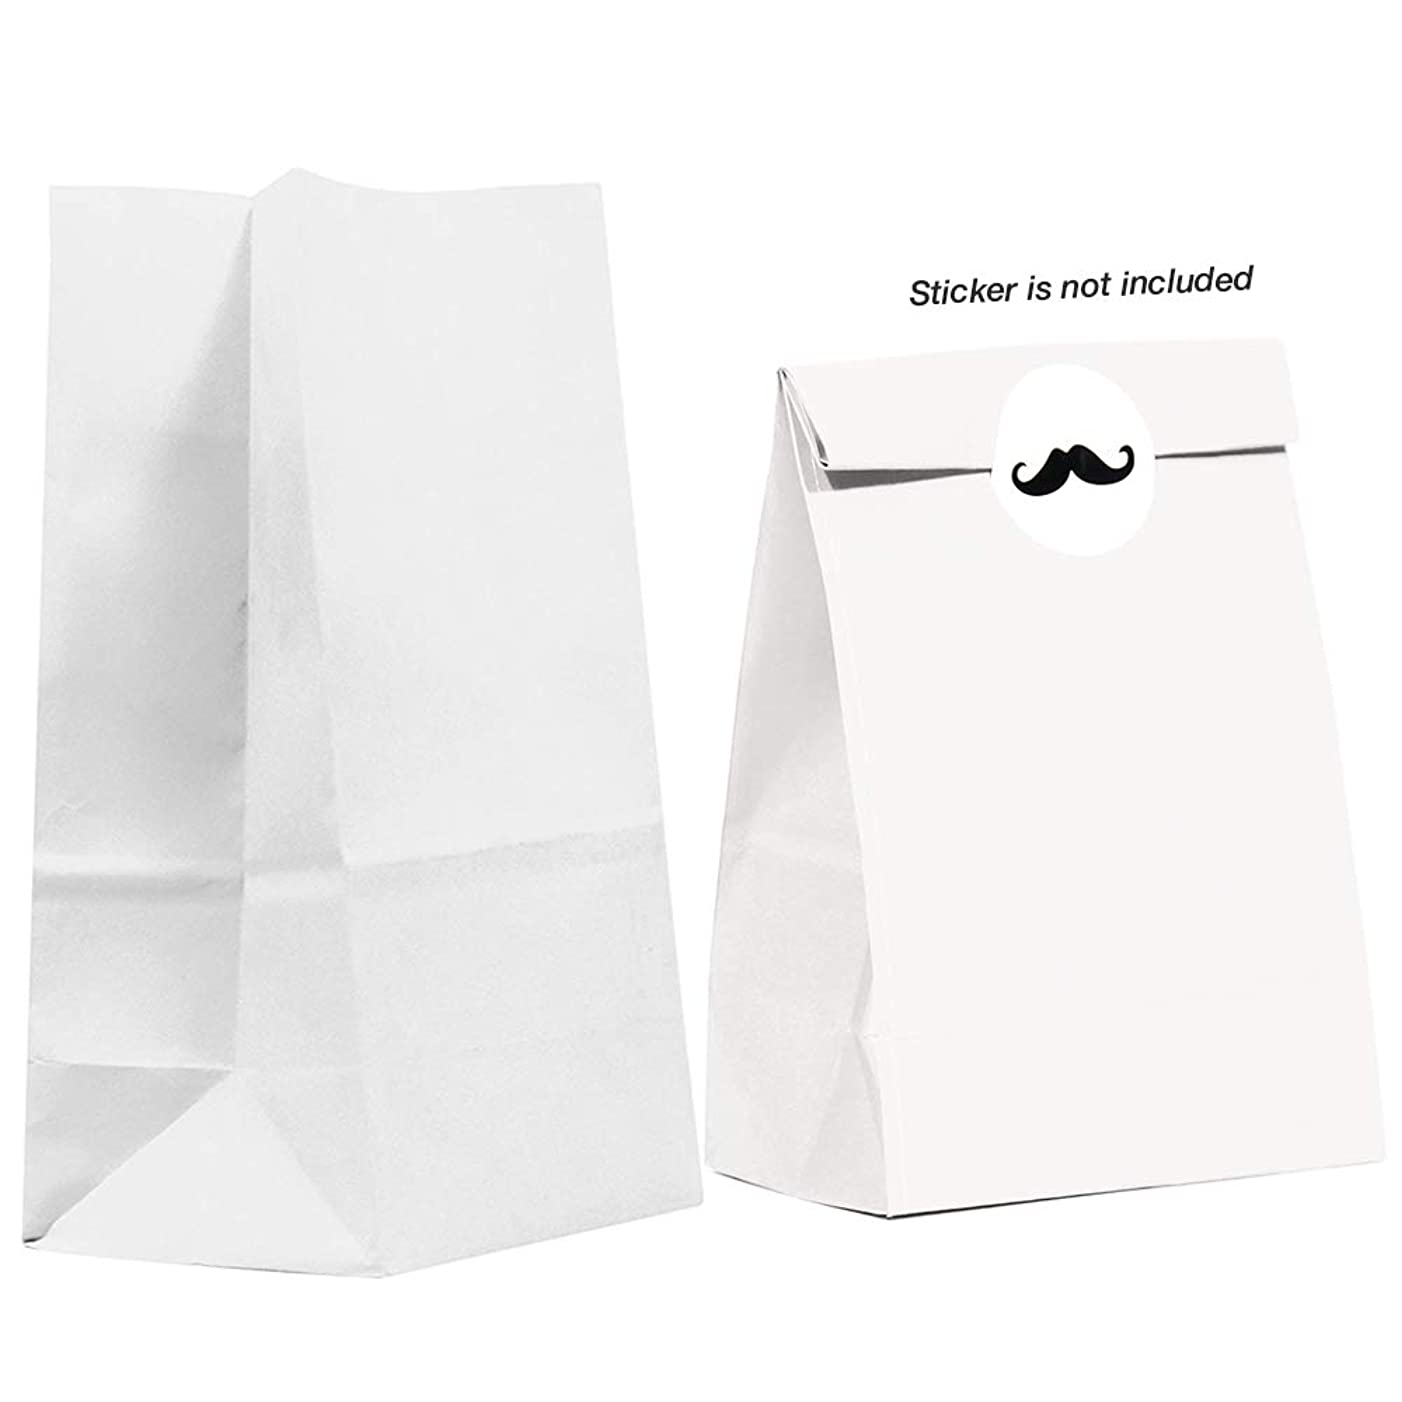 40CT Biodegradable, Premium Quality Paper (Thicker), Paper Bag, Kraft Paper Sack, Goody Bags, Treat Sacks, Perfect for Party Filled with Small Favors (Small, White)